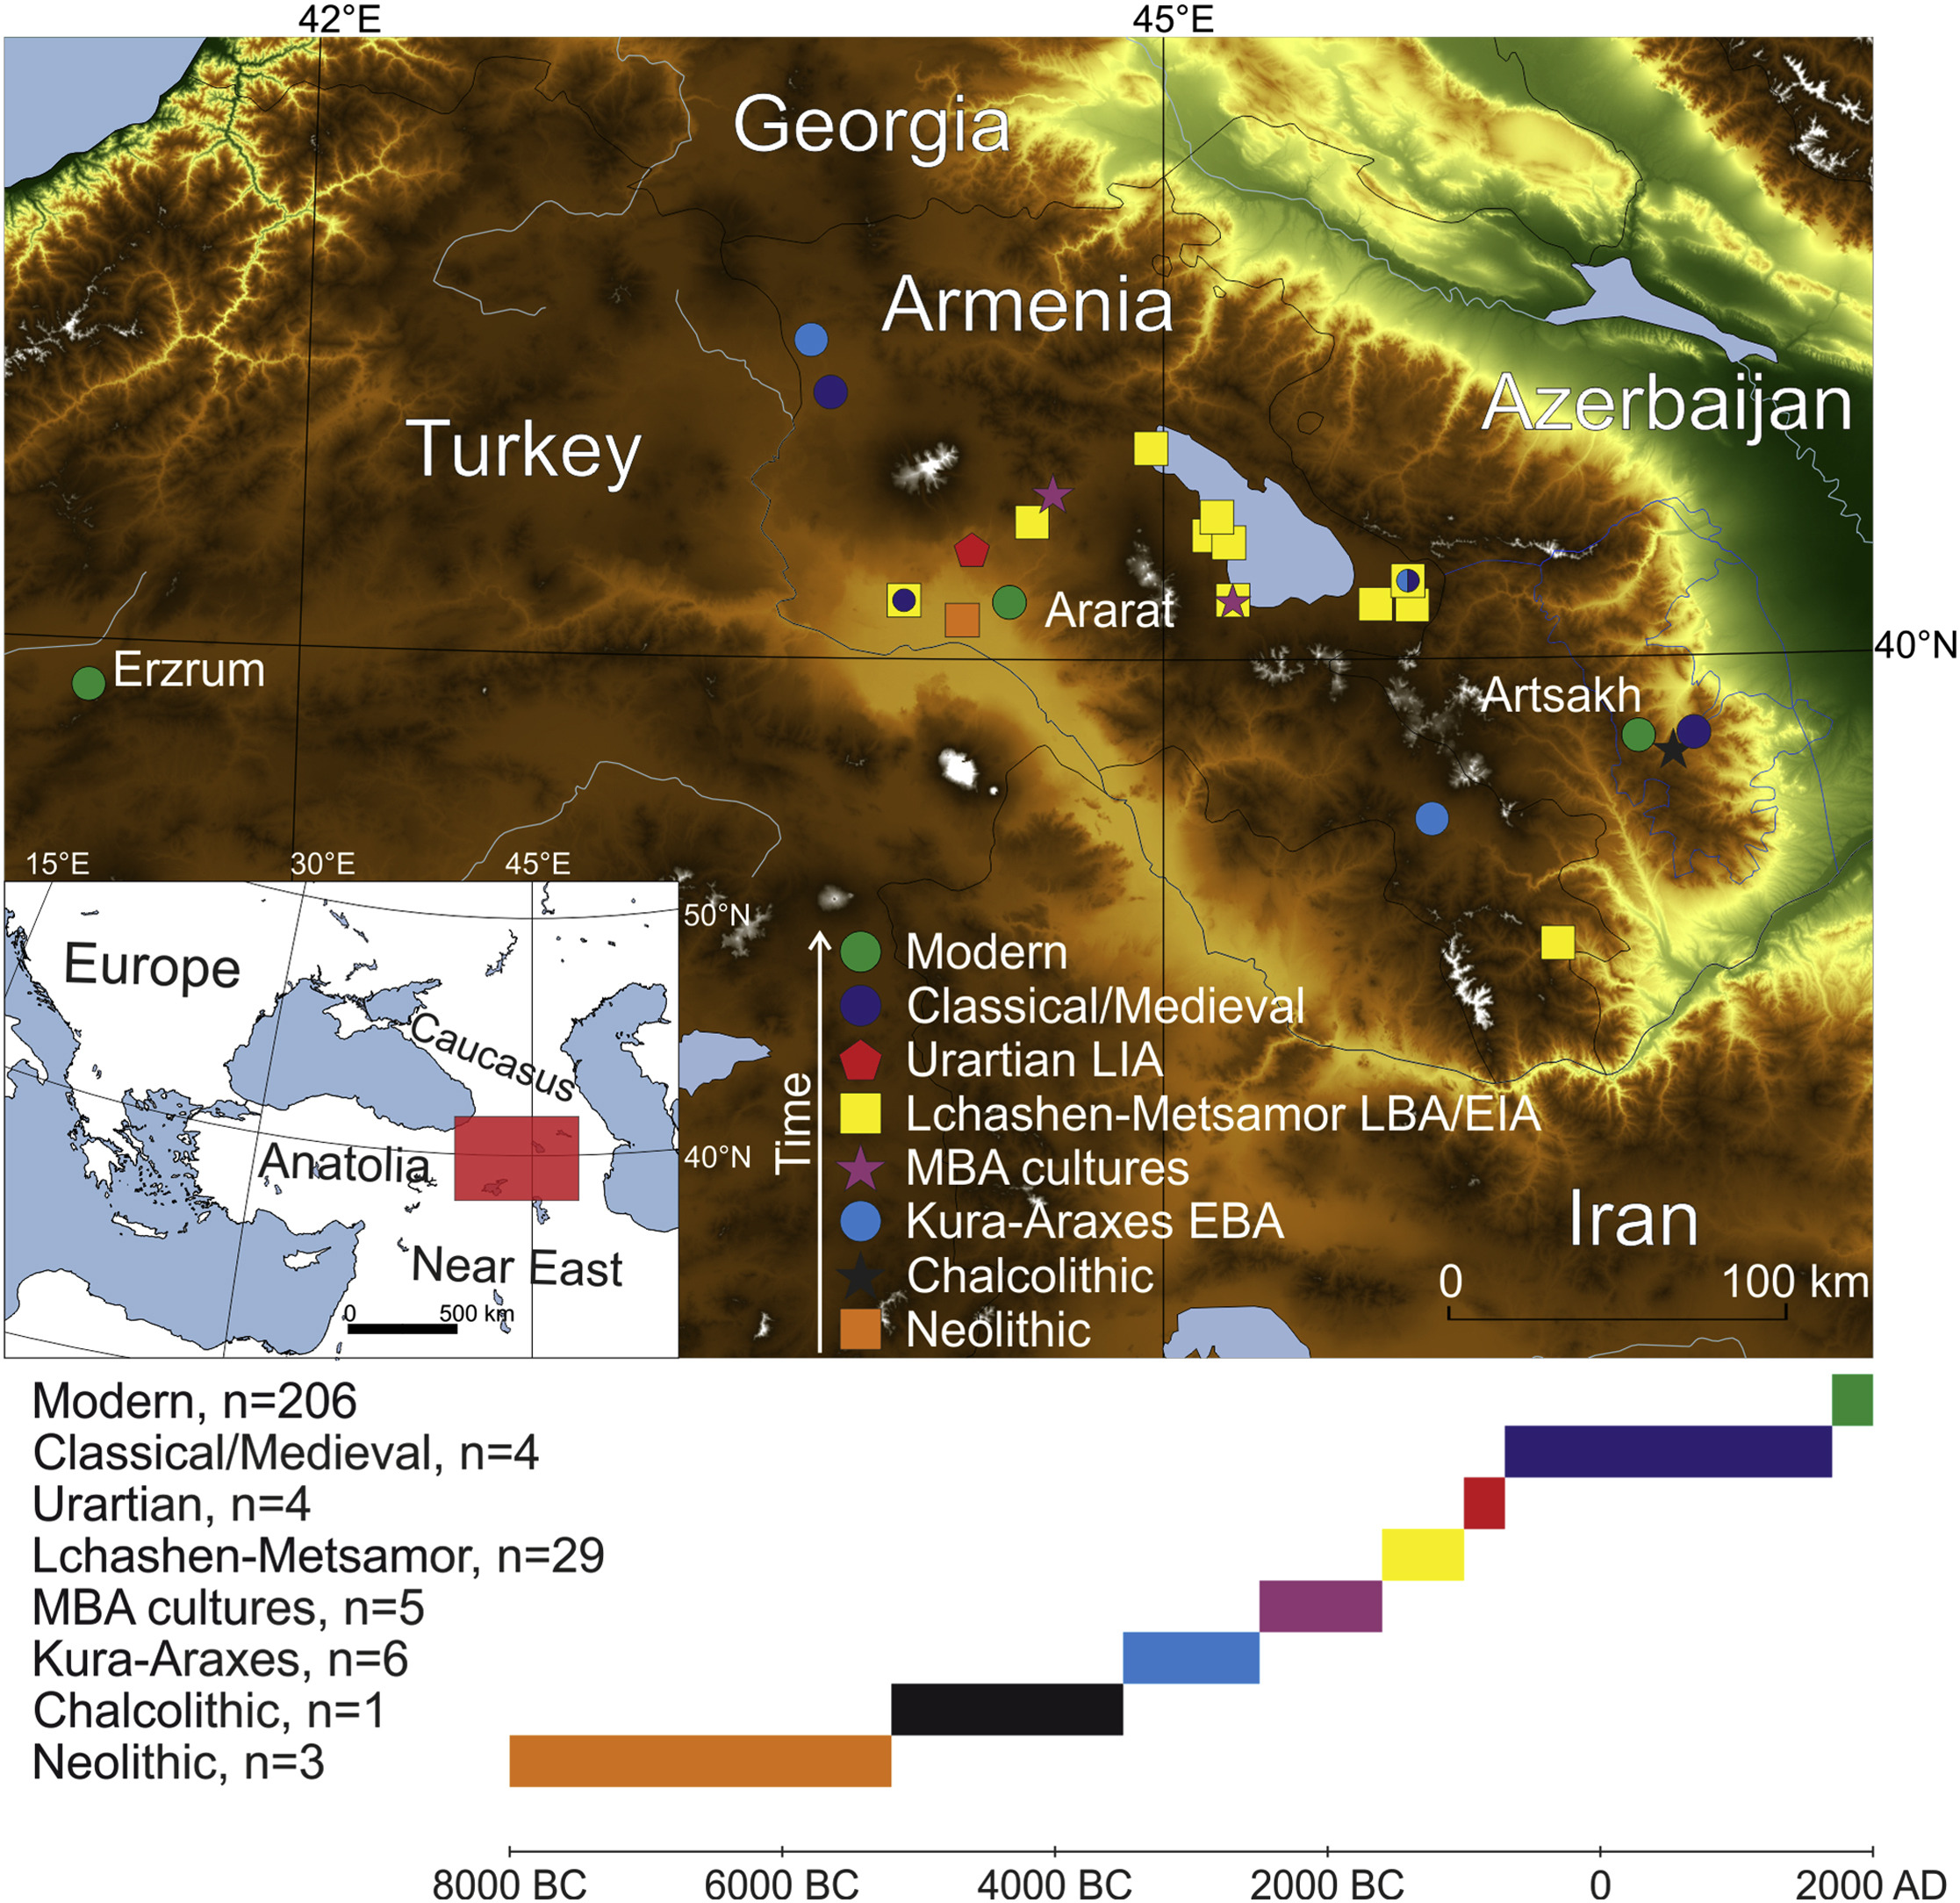 Maps of the Near East (insert) and Armenia with sampling and origin areas of ancient and modern individuals, respectively. EBA, early Bronze Age; MBA, middle Bronze Age; LBA, late Bronze Age; EIA, early Iron Age; LIA, late Iron Age.